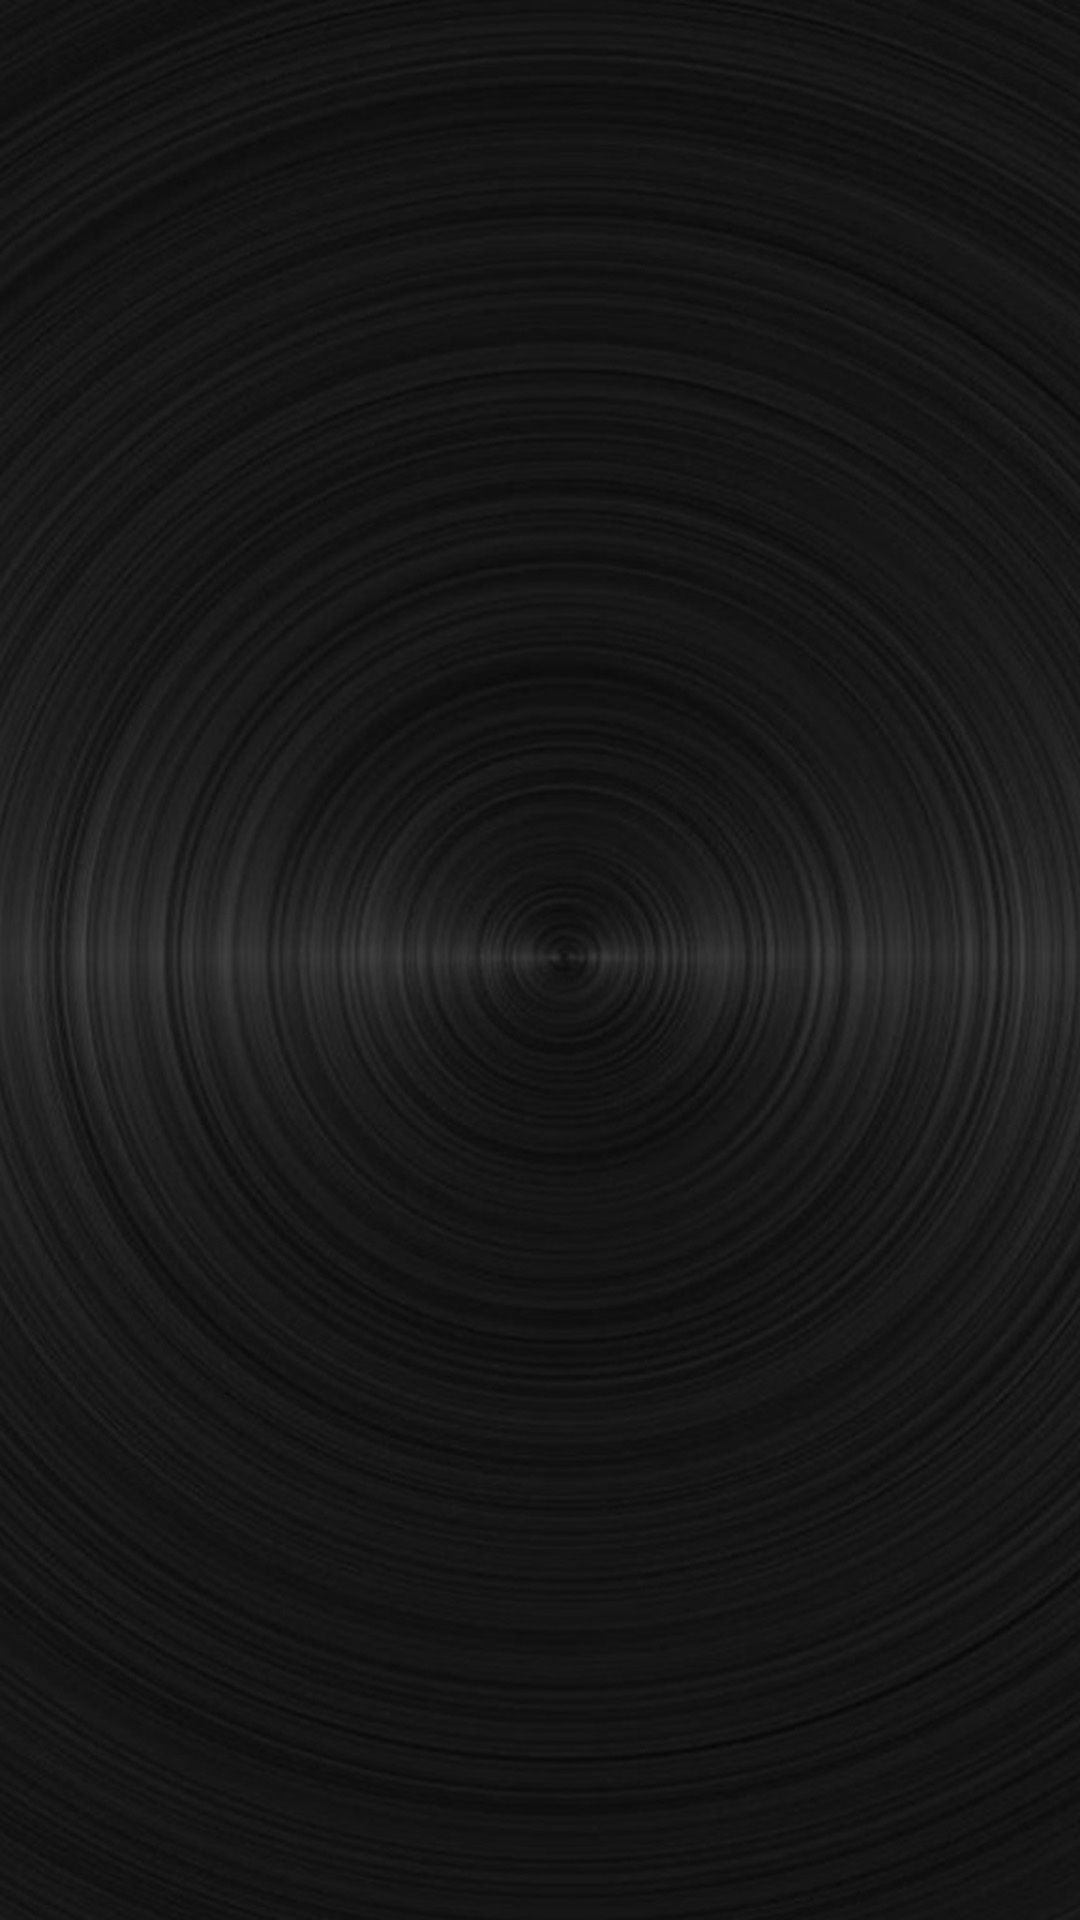 Black Wallpaper Hd Hupages Download Iphone Wallpapers Solid Black Wallpaper Black Phone Wallpaper Android Wallpaper Black